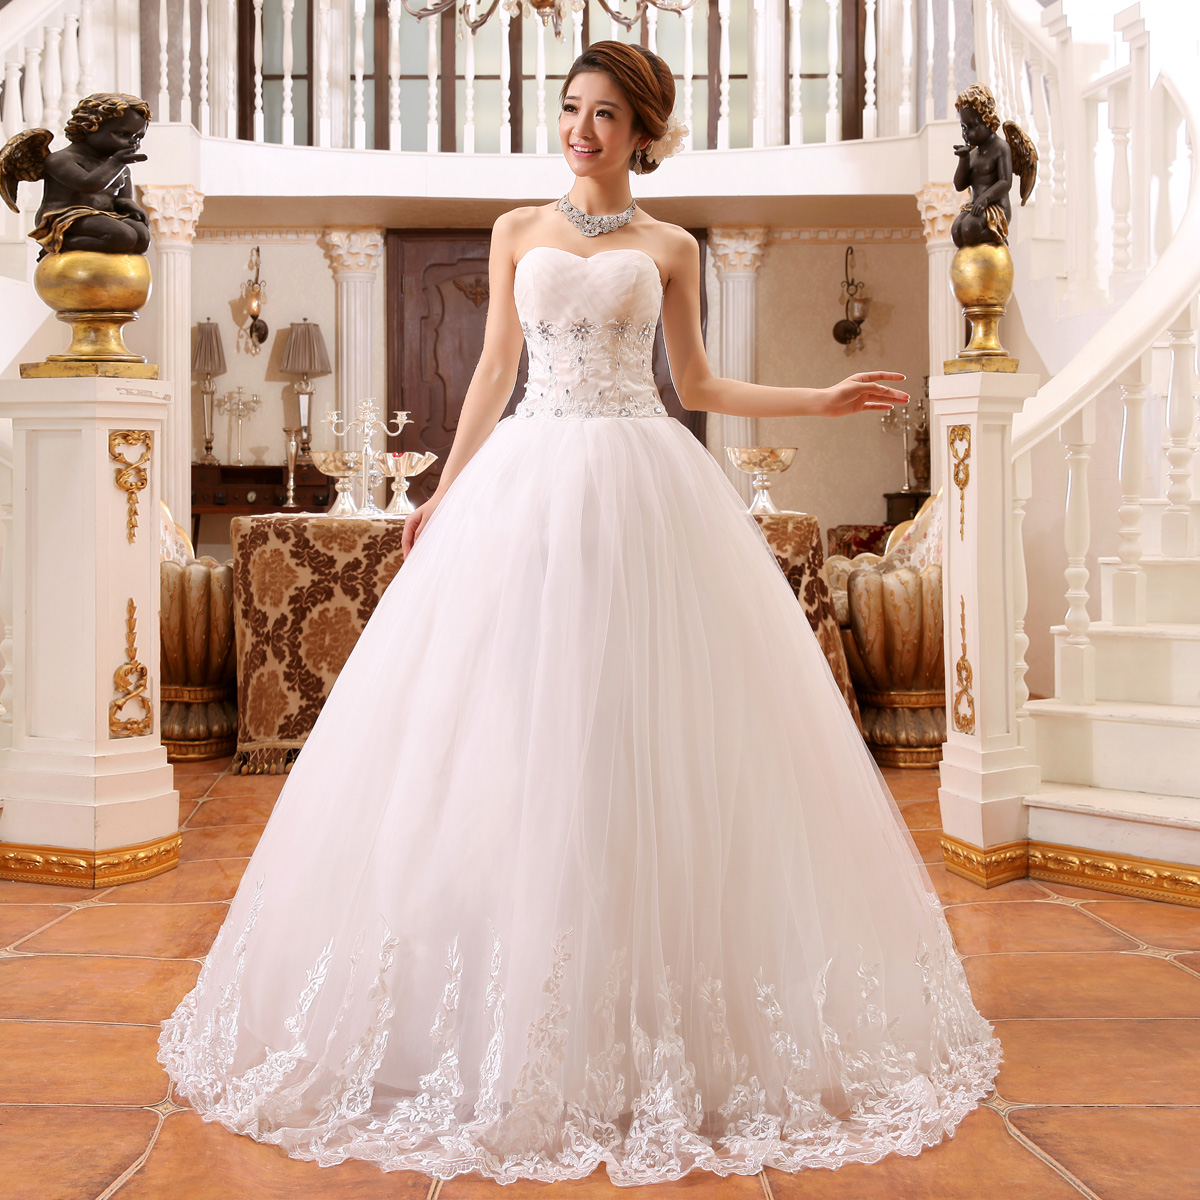 Sexy Wedding Dress Bridal Gown Bride Strapless Plus Size Satin Wedding Dresses Large Size Embroidery Dress